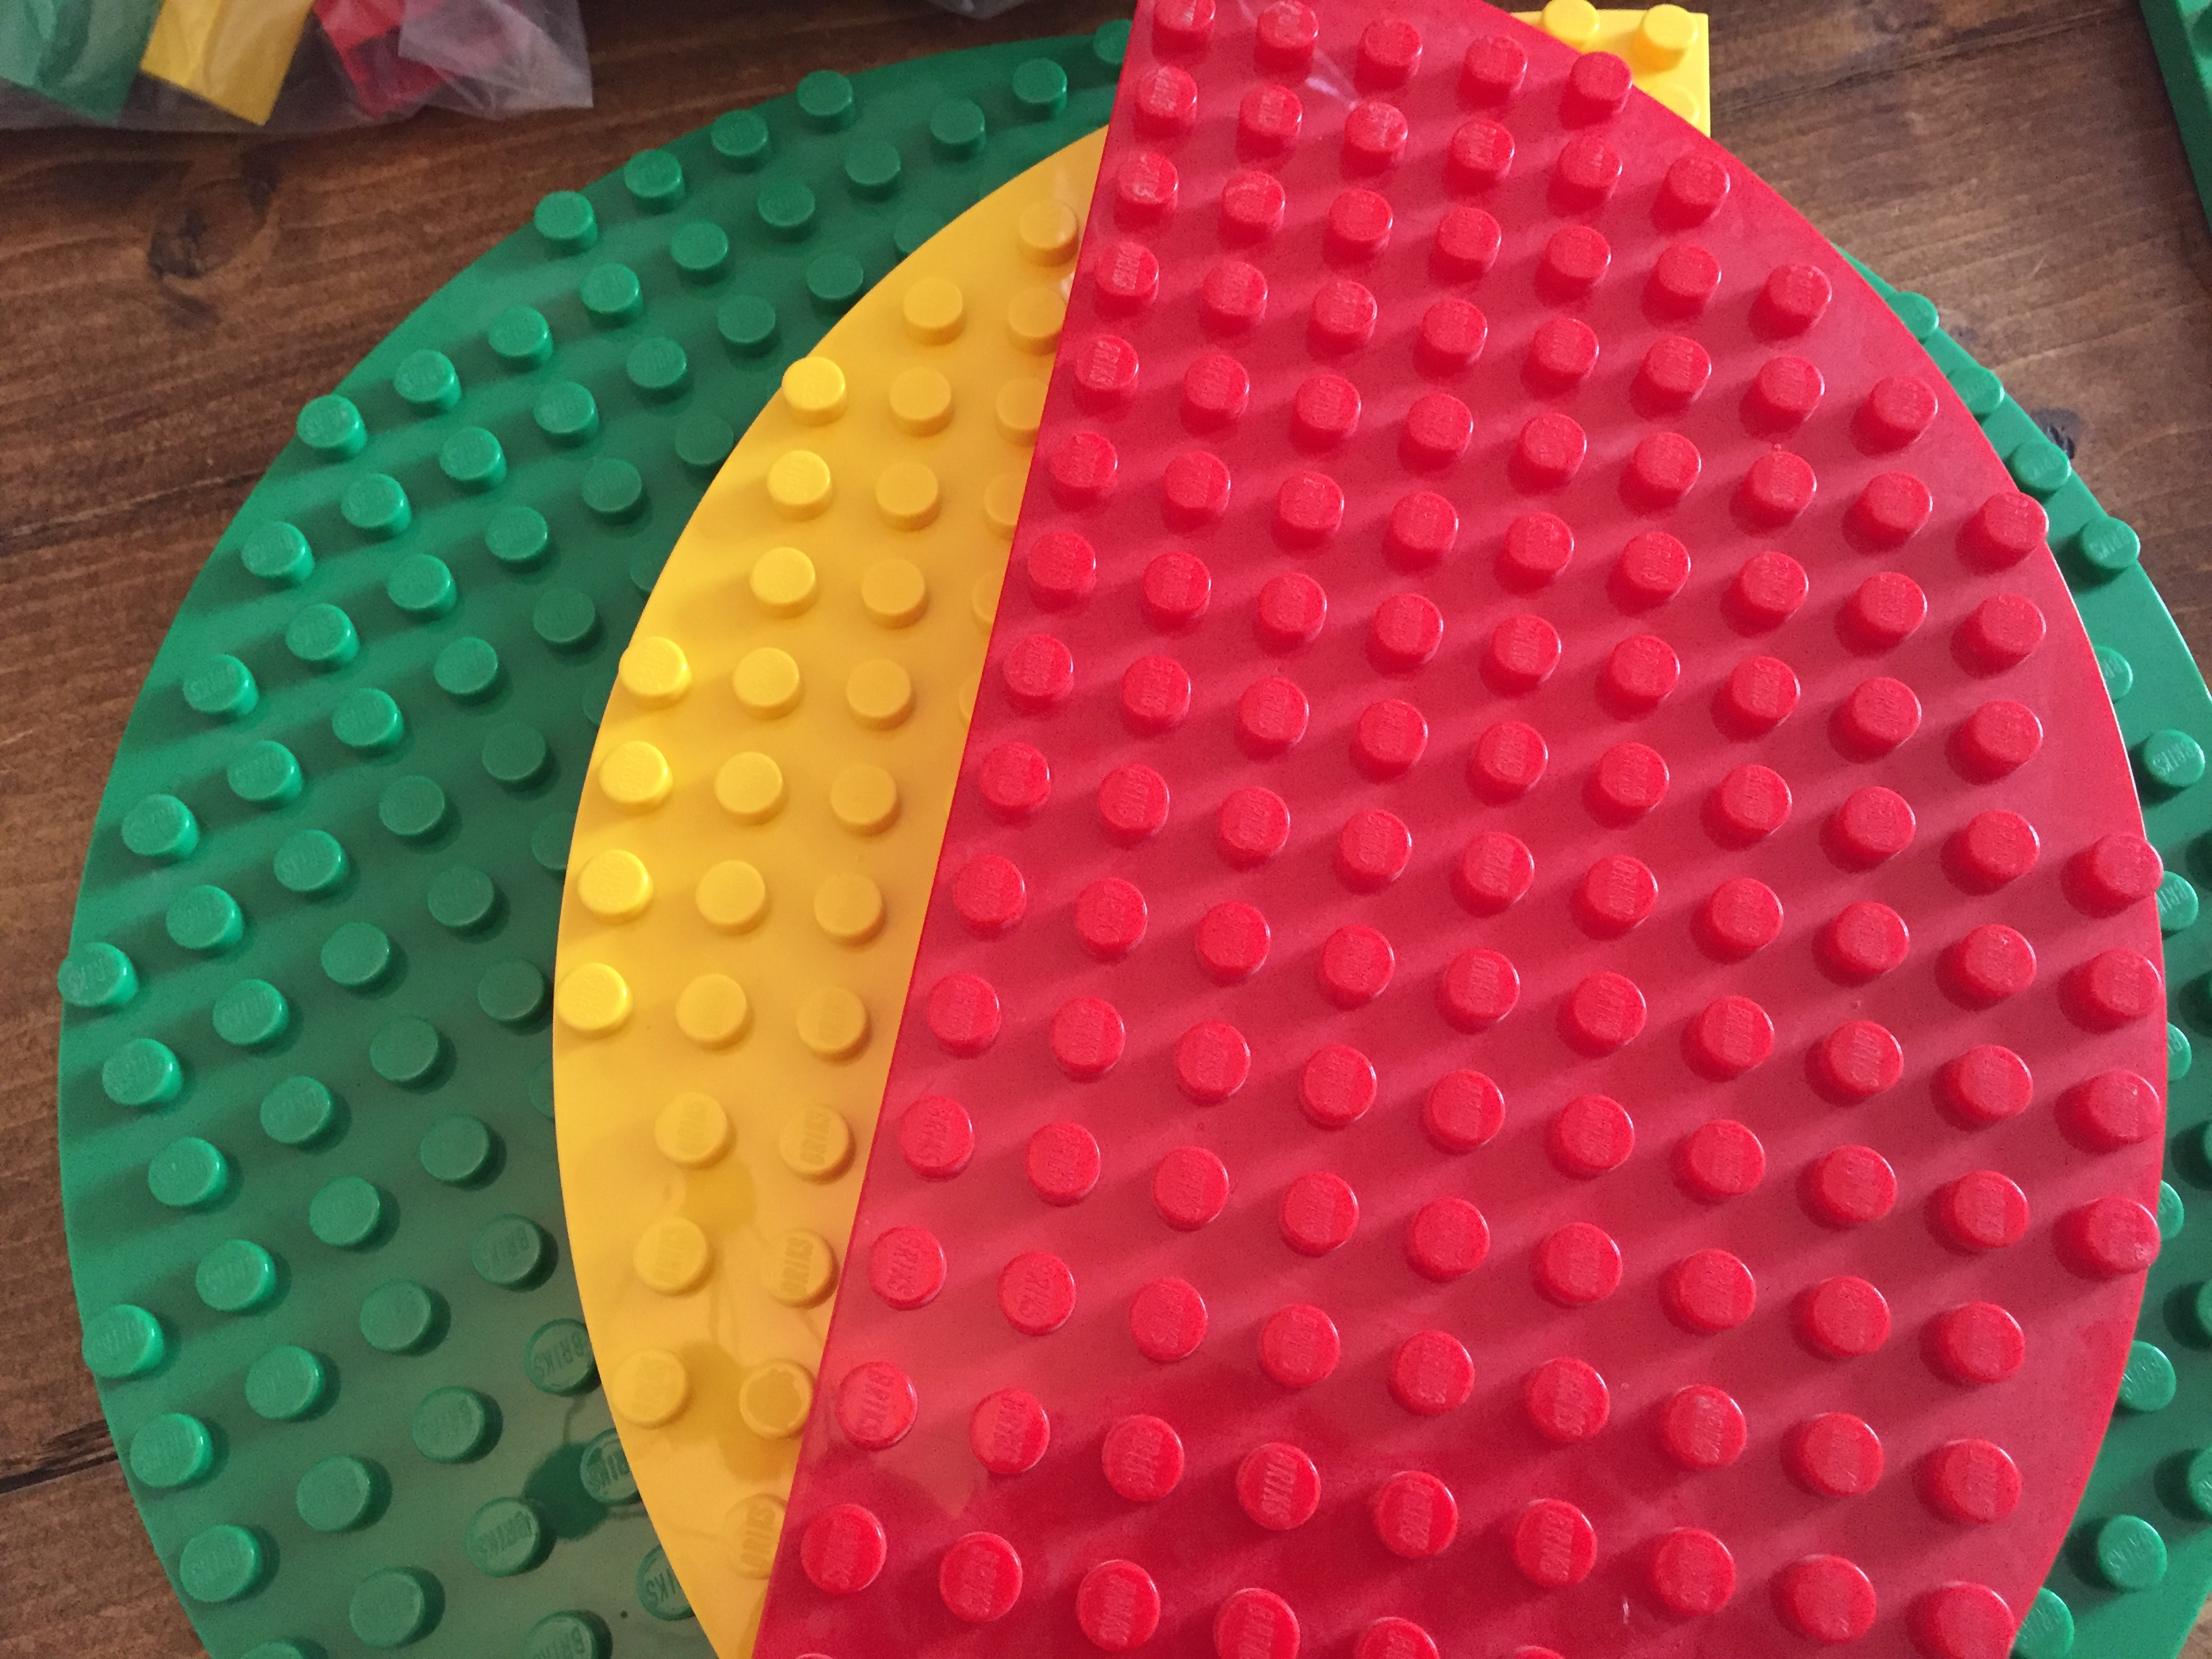 Strictly Bricks Review